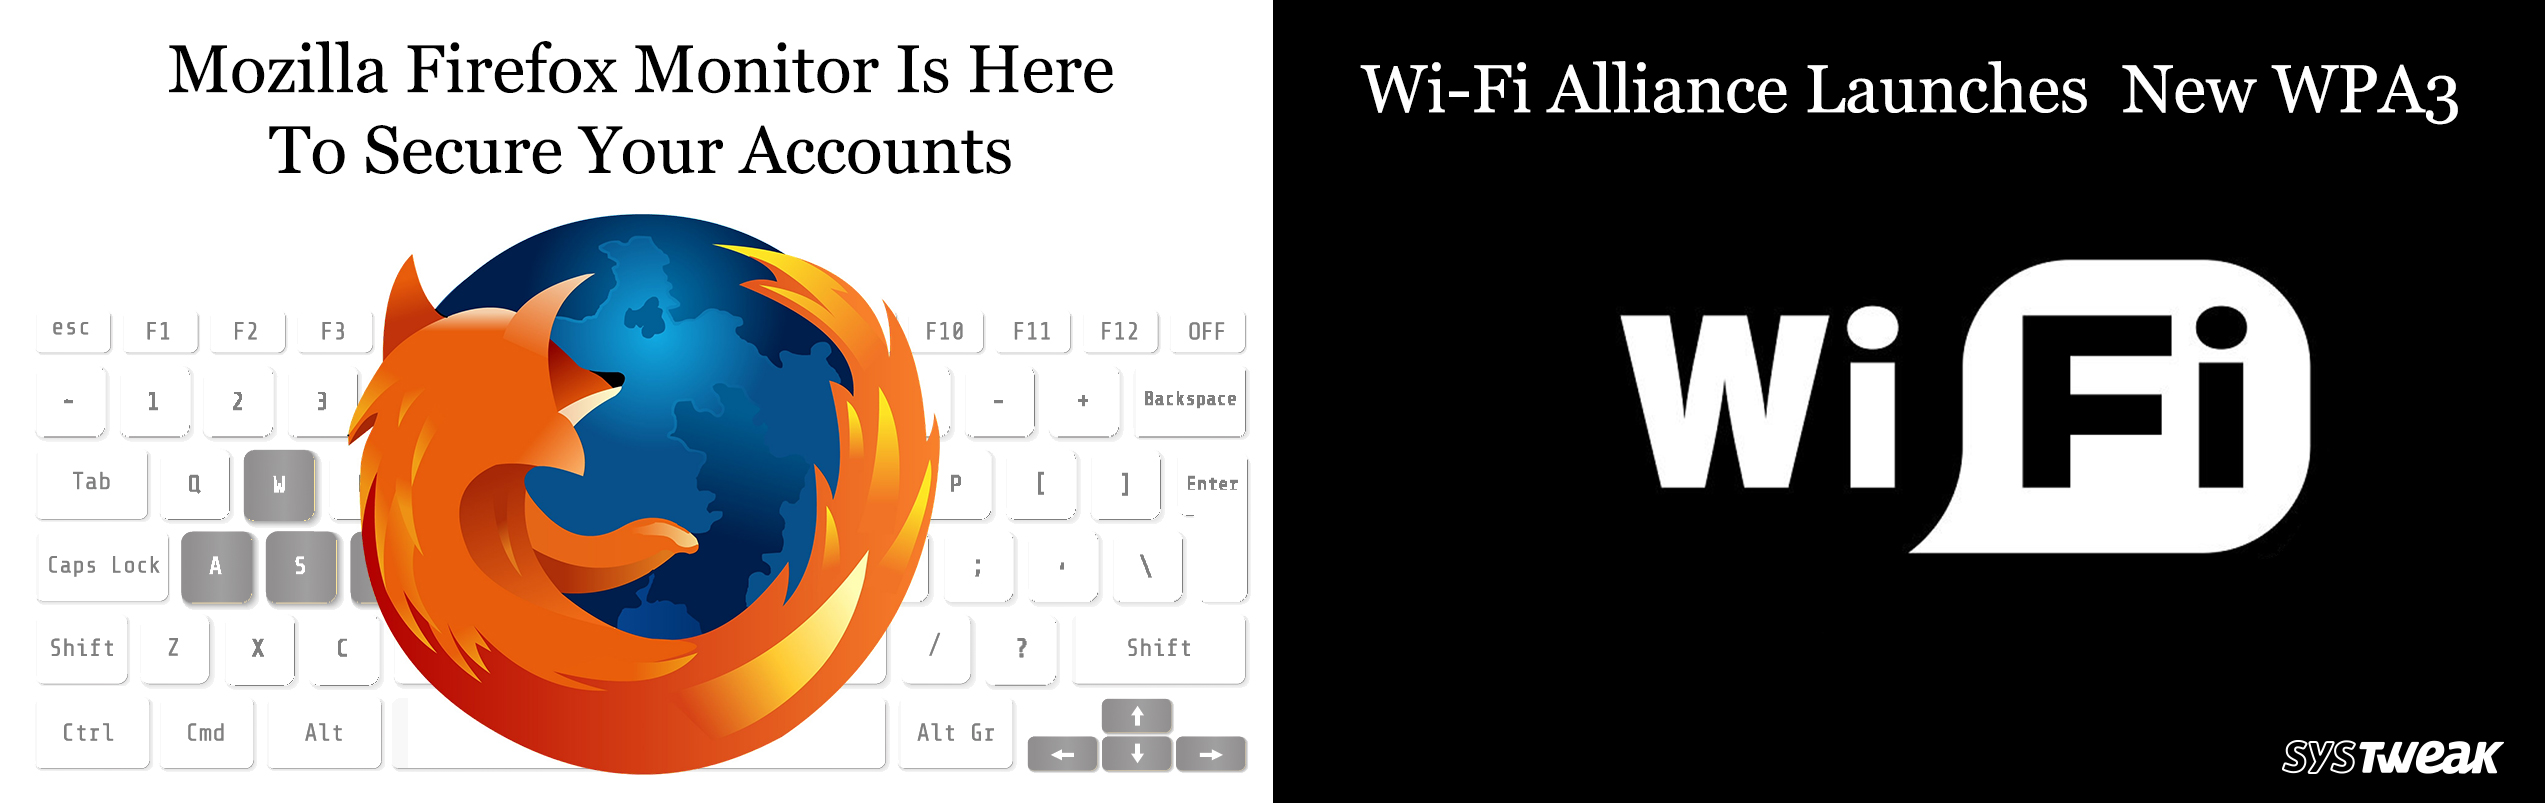 Newsletter: Mozilla's Firefox Monitor To Safeguard Your Accounts & Wpa-3 Is Here With Better Wi-Fi Security